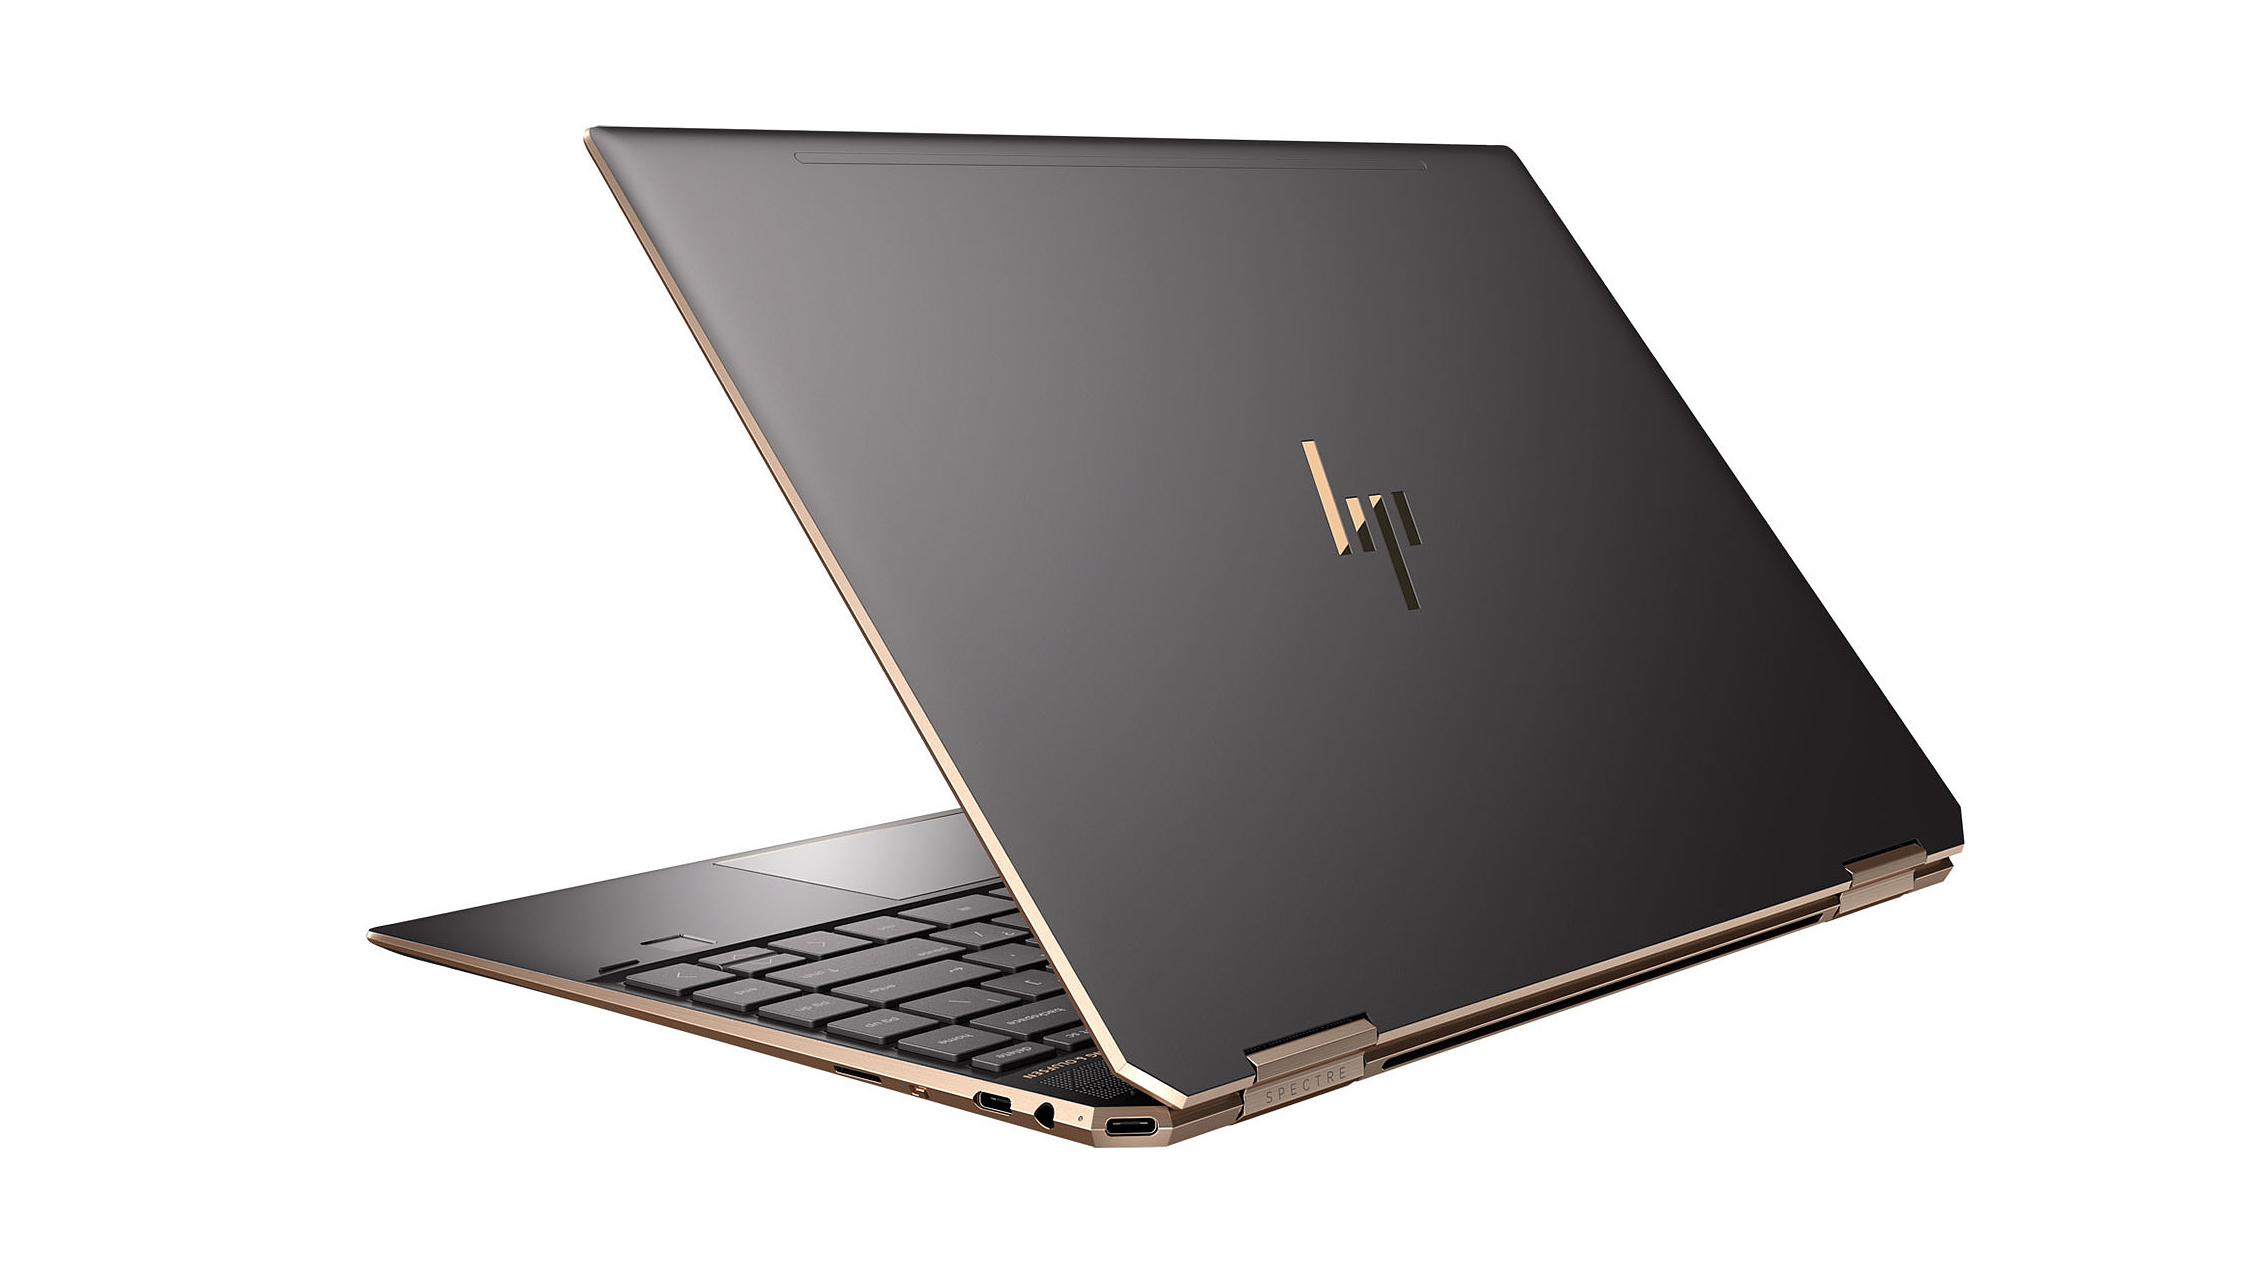 Image of the back of the HP Spectre x360 laptop